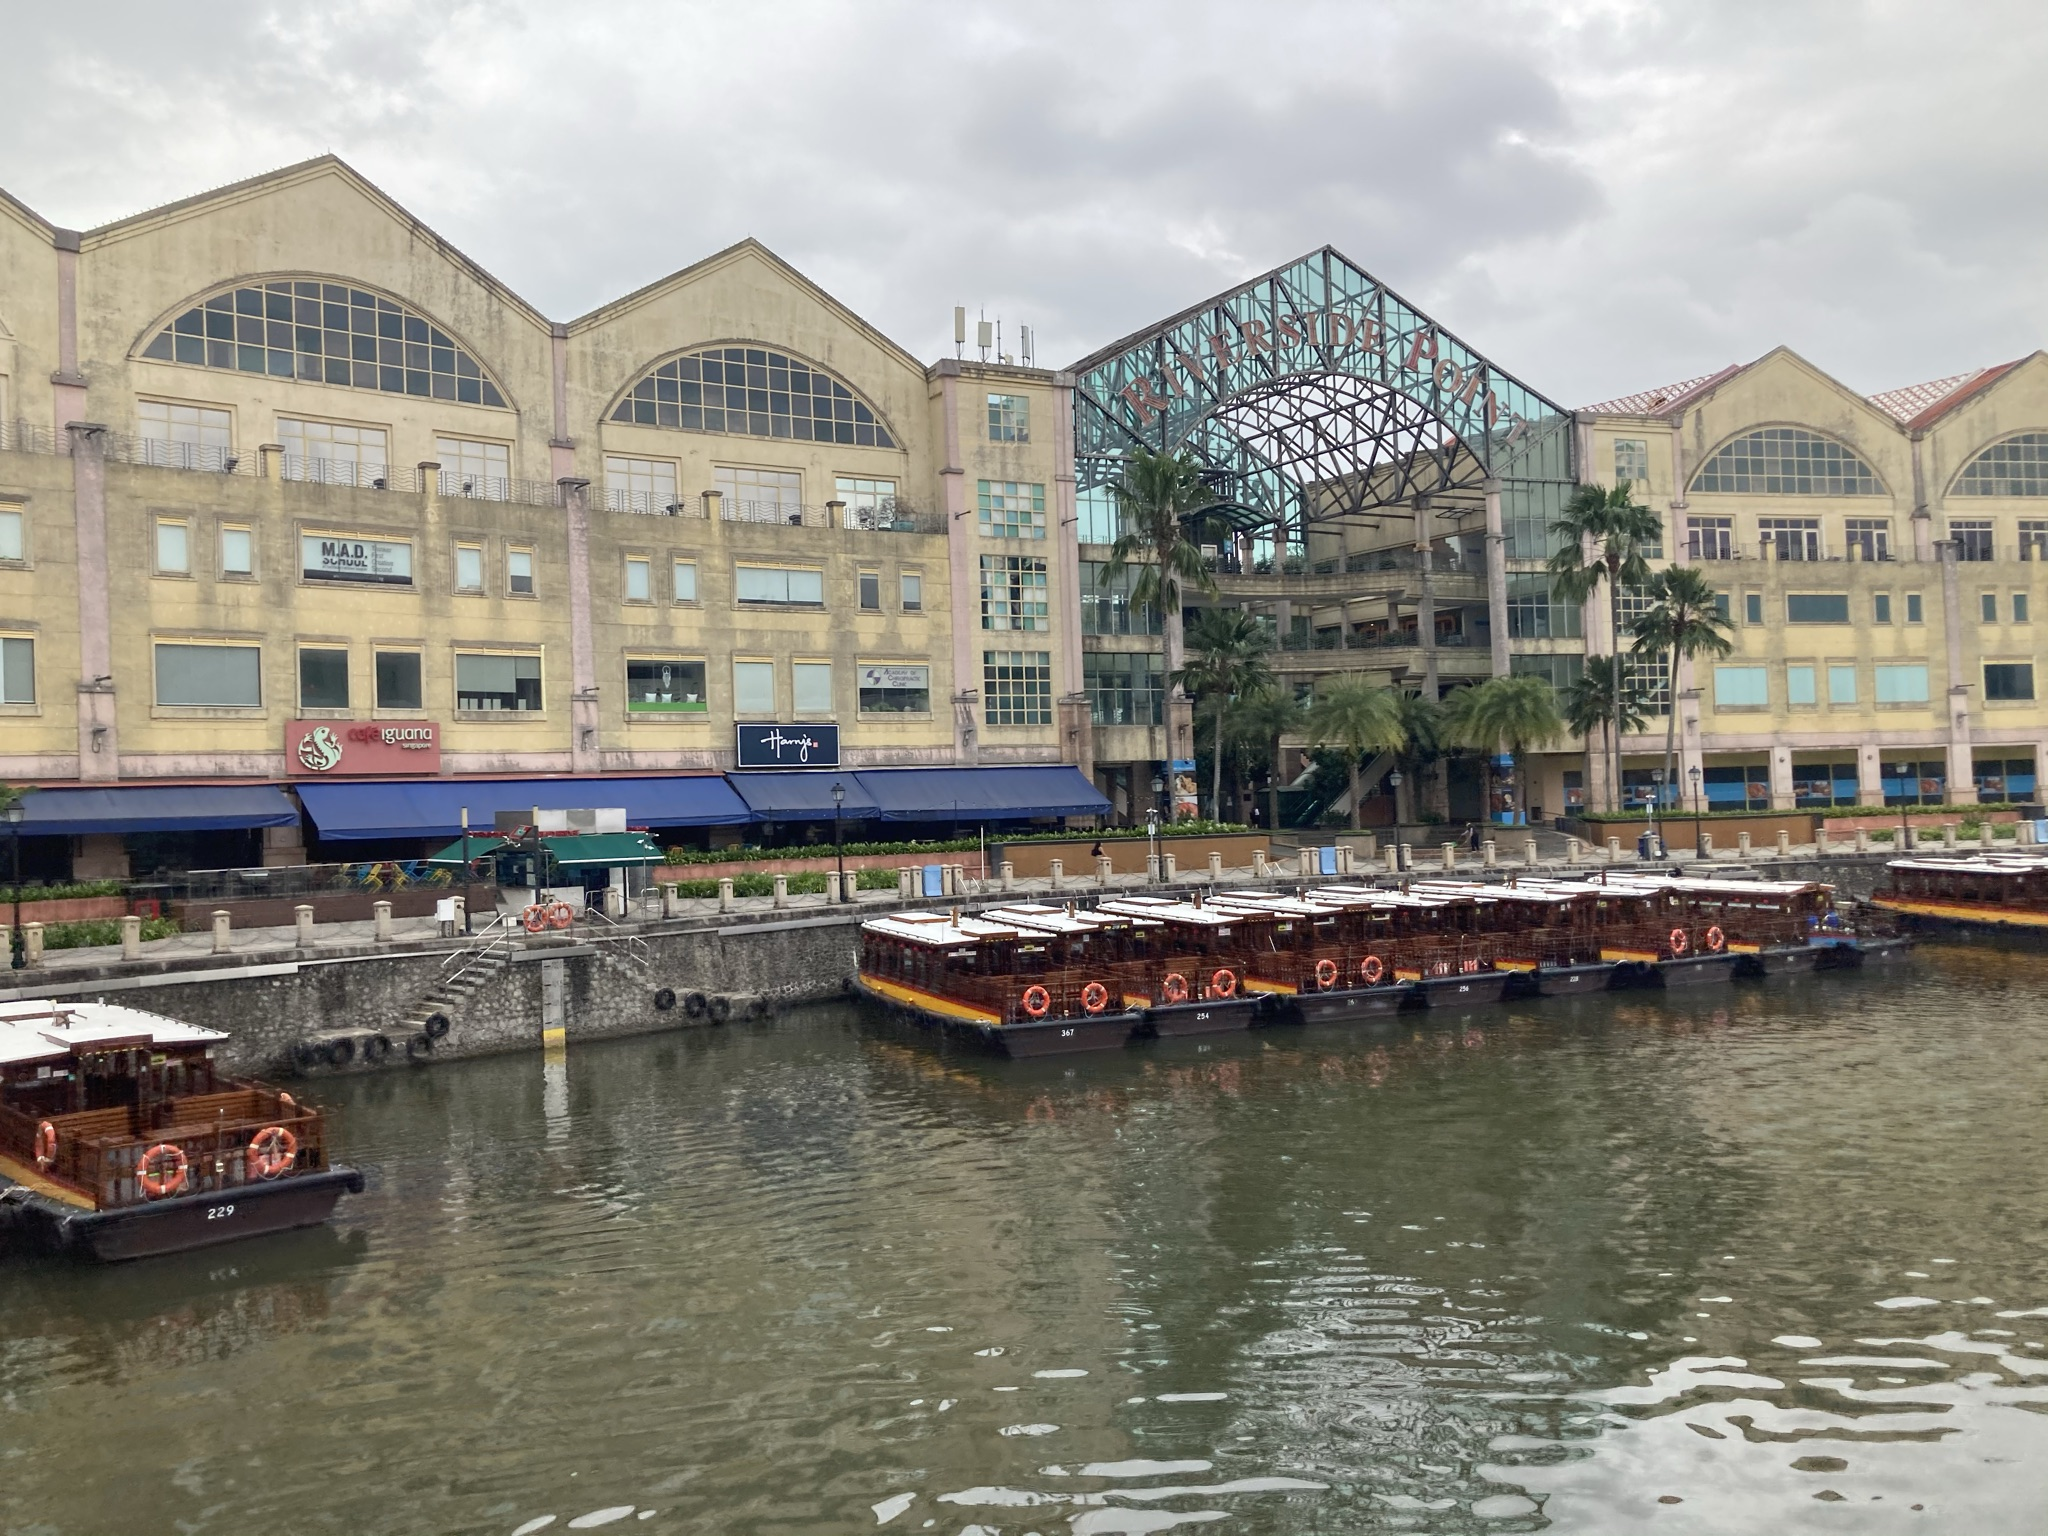 Canninghill Piers Development Near to Singapore River Highly Sought After City Centre Condo